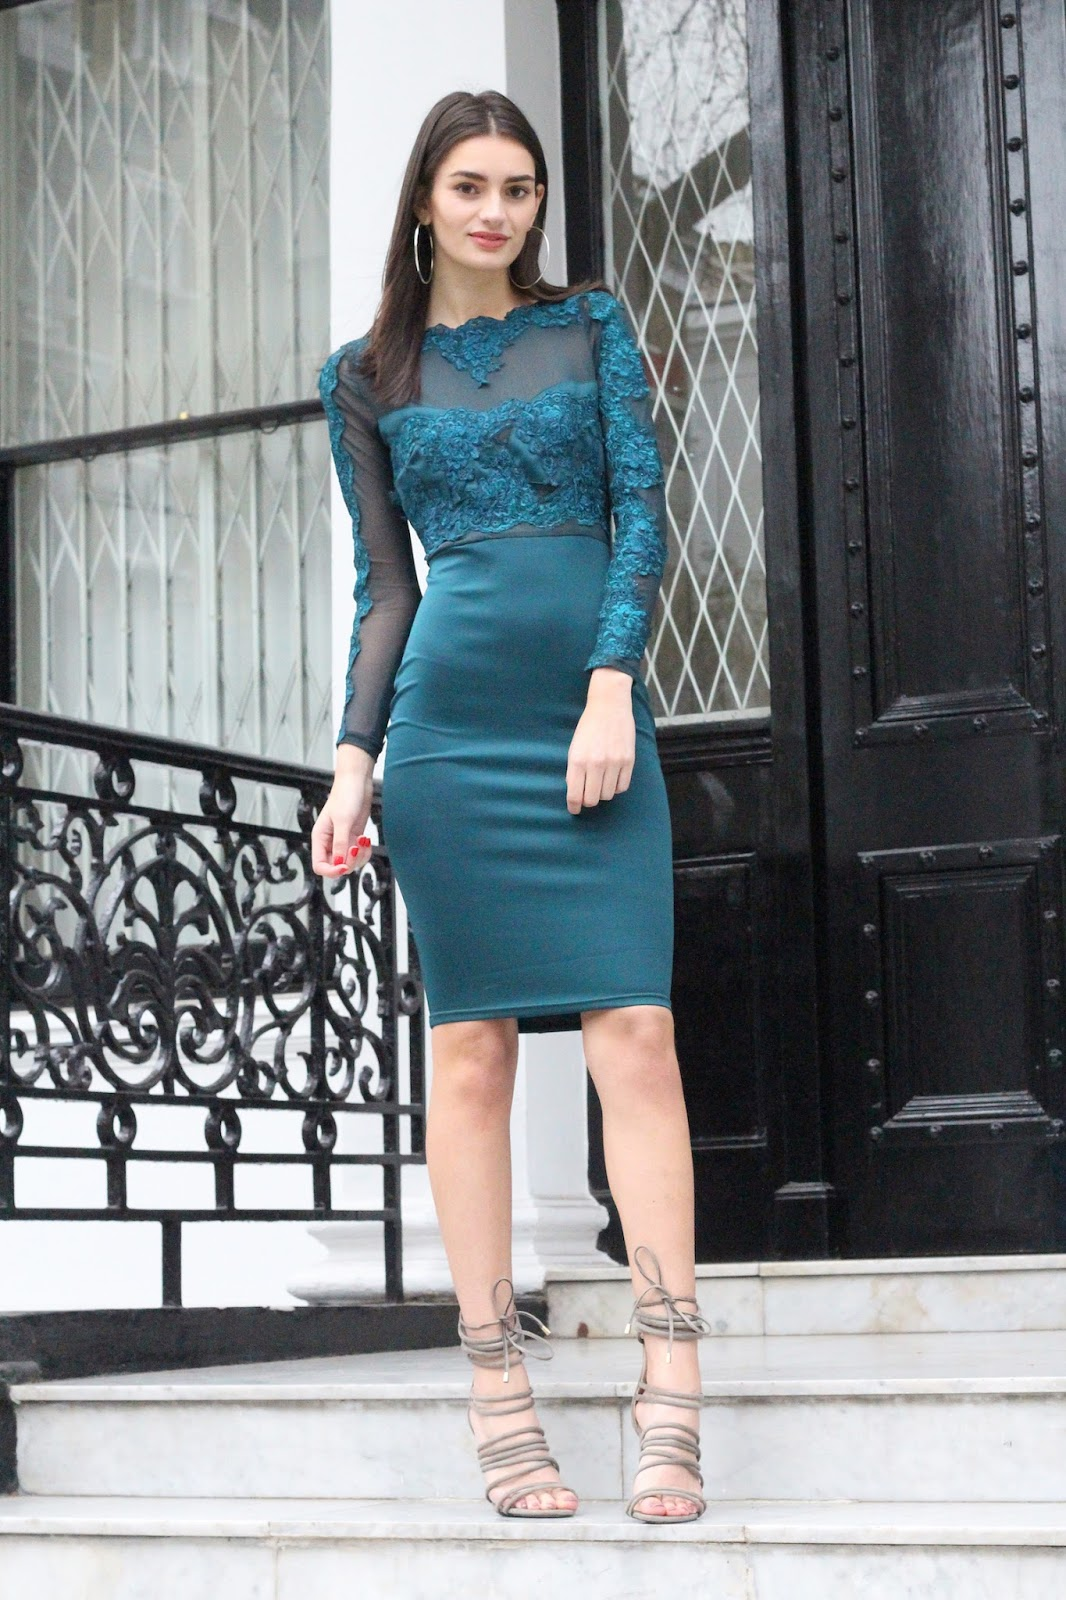 peexo fashion blogger wearing midi dress with mesh inserts